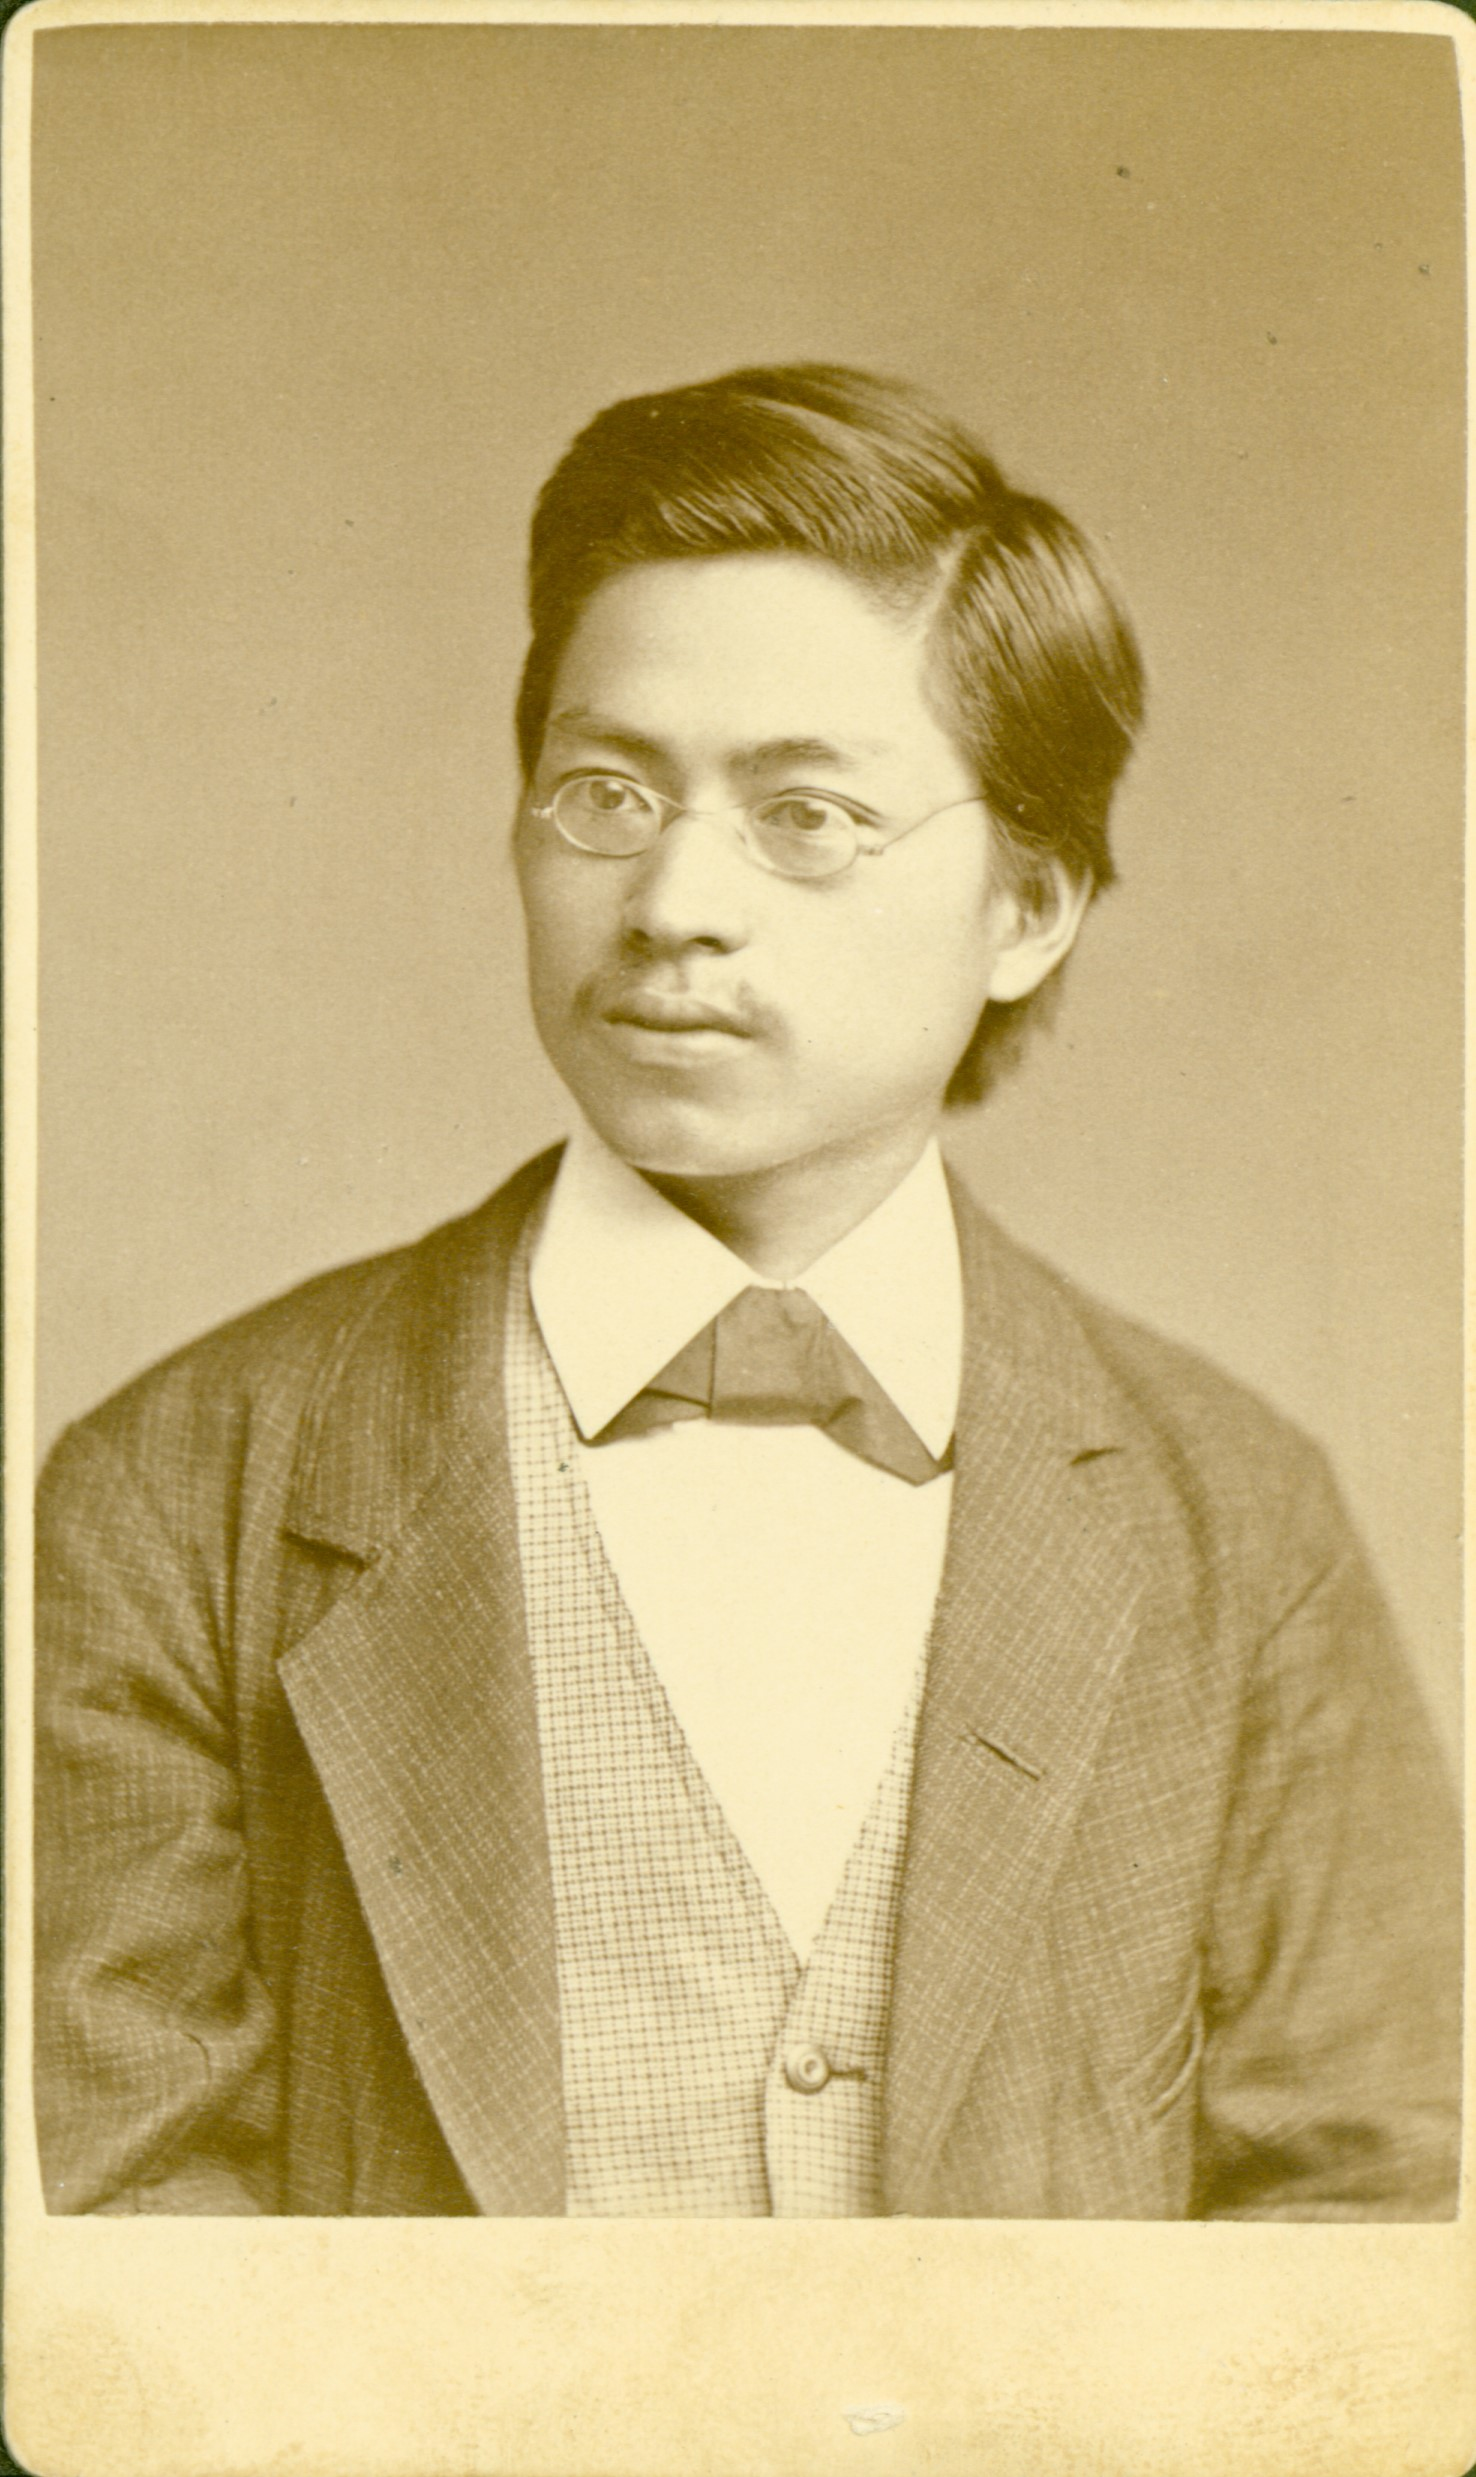 Photograph of Hideo Takamine as a young man.